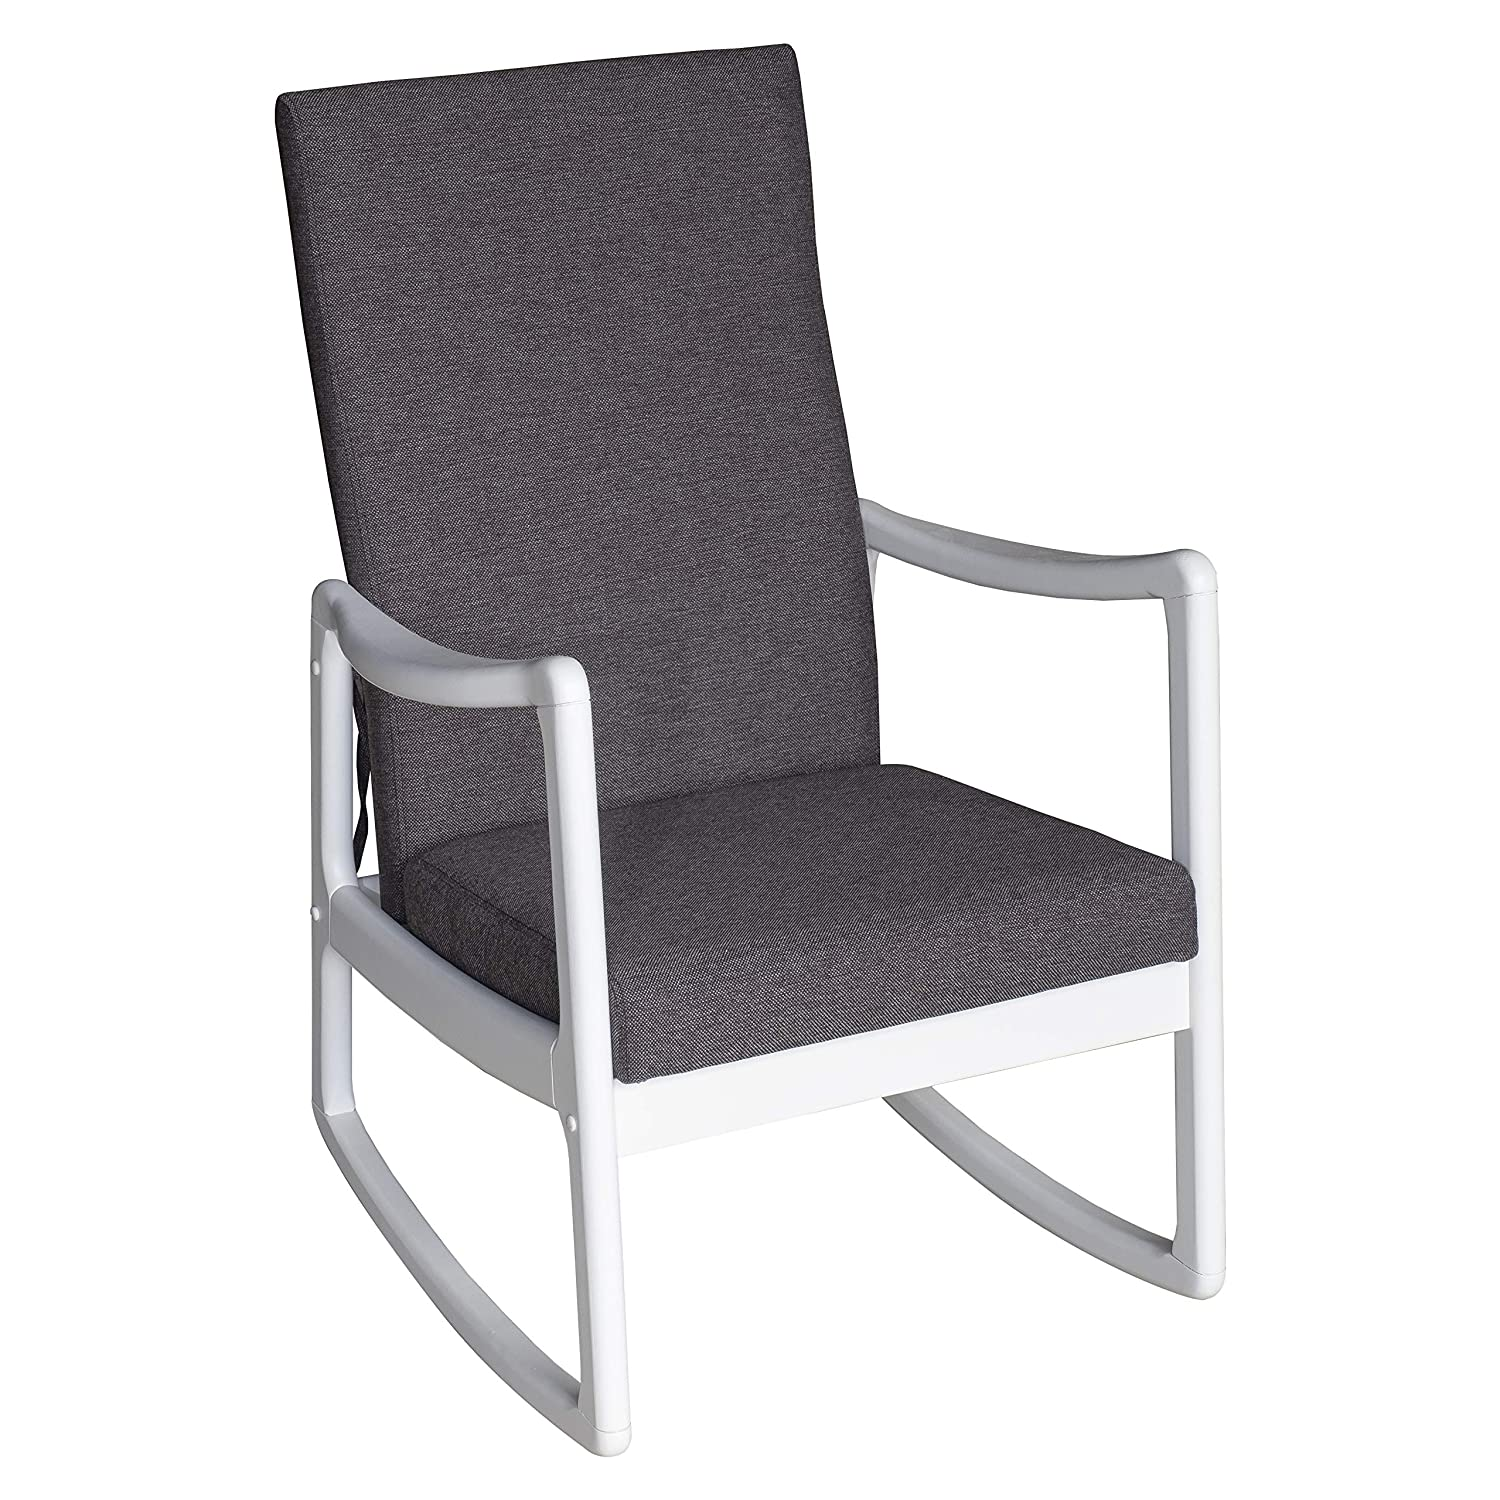 Outstanding Homcom Modern Wood Rocking Chair Indoor Porch Furniture For Living Room White Gray With Cushion Download Free Architecture Designs Scobabritishbridgeorg